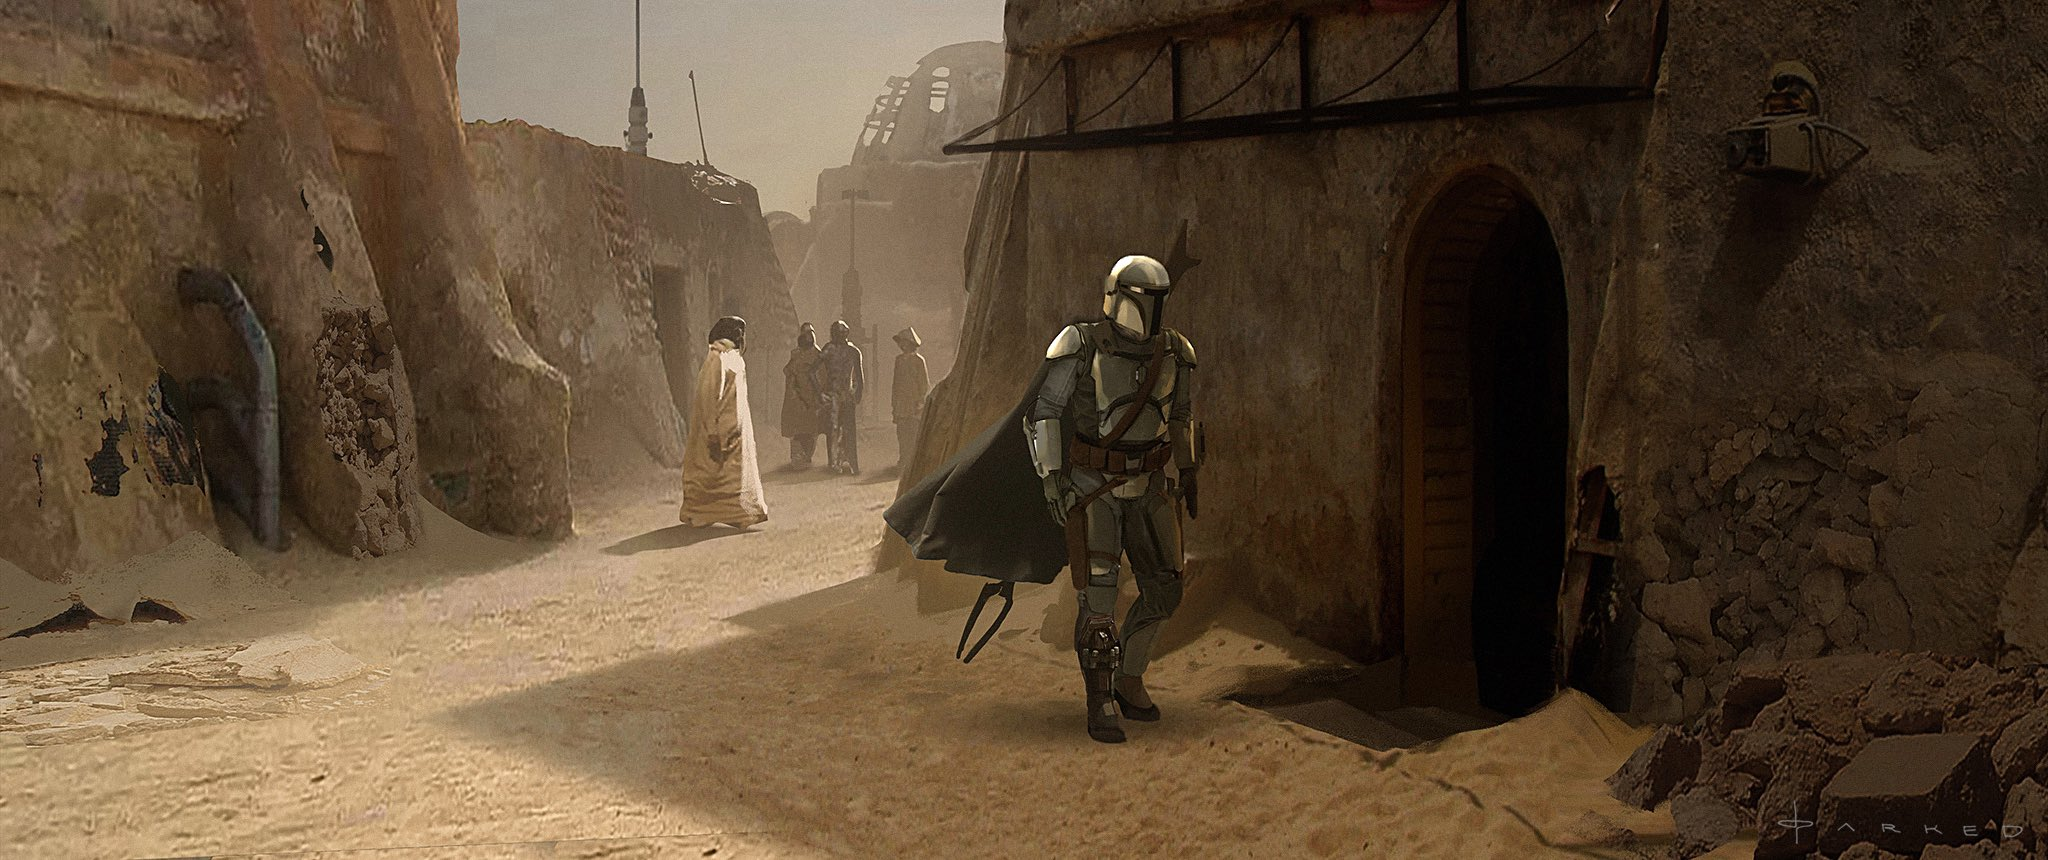 The Mandalorian On Twitter Official Concept Art From Chapter 5